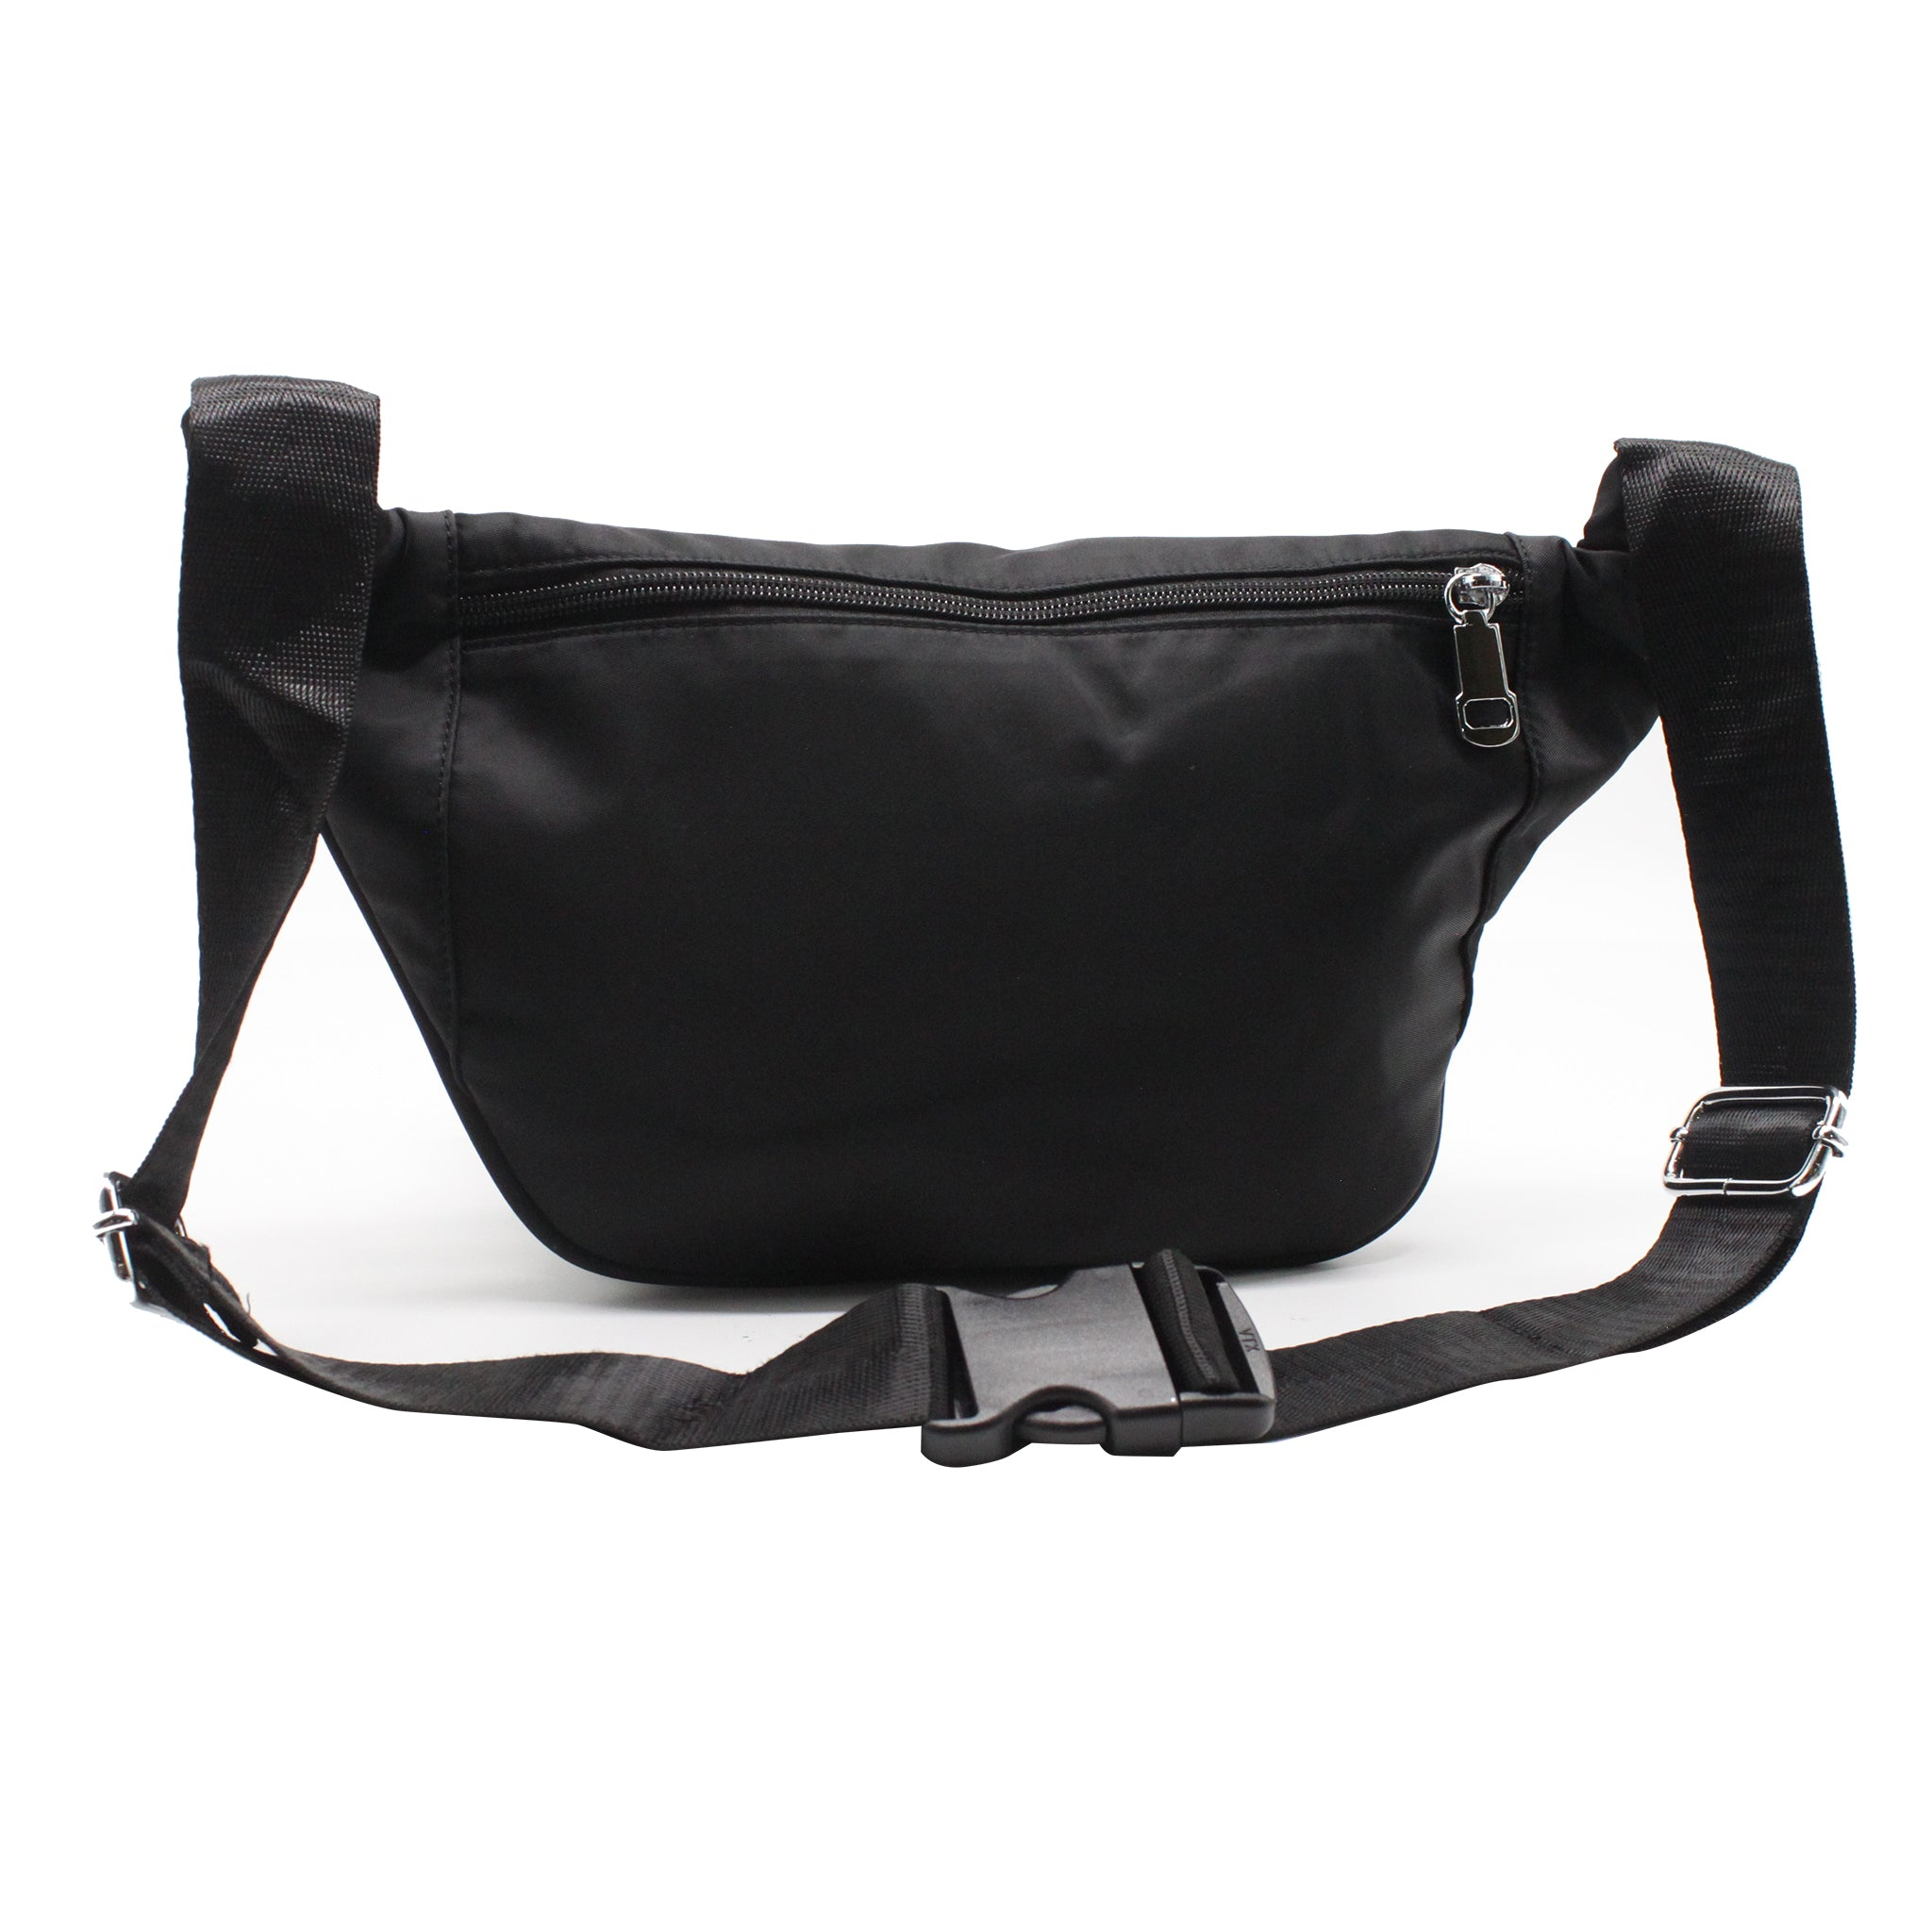 Nylon Chest Pack - Black